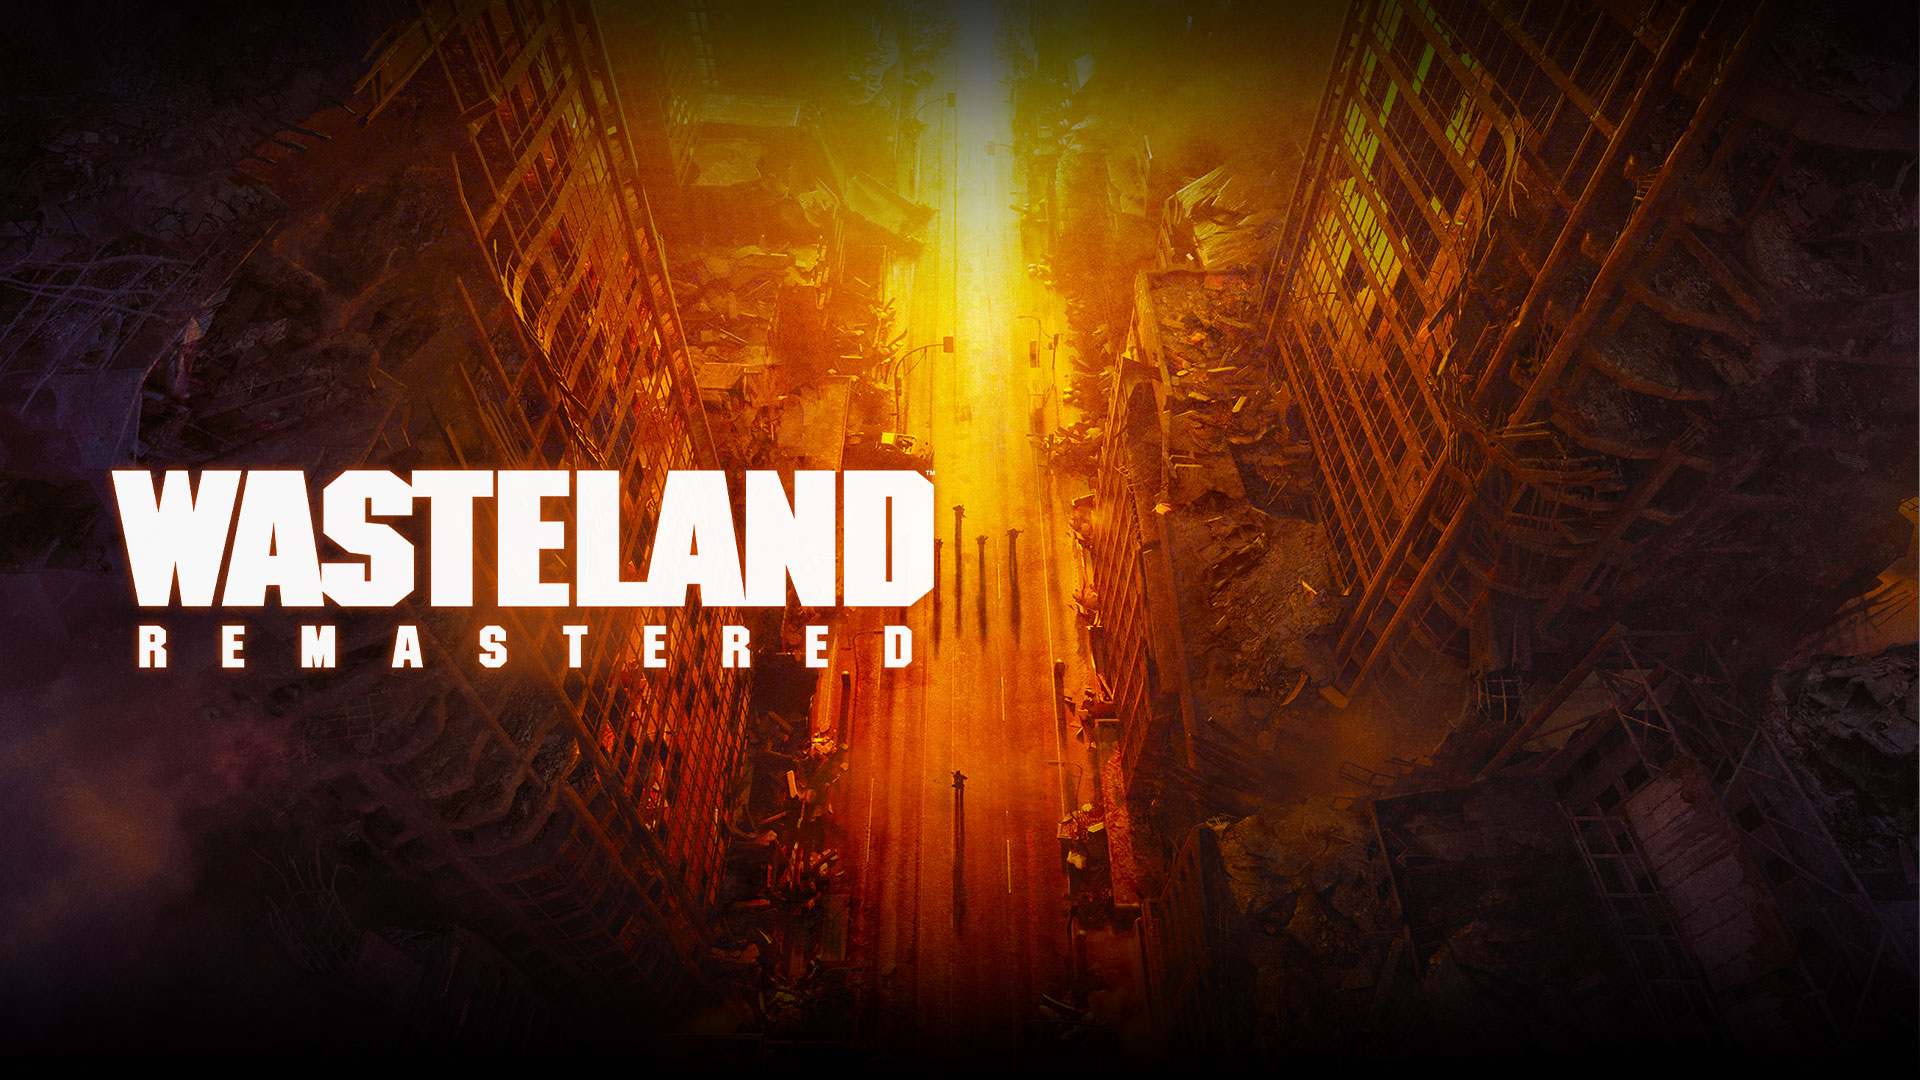 Wasteland Remastered, top view of ruined buildings and people on the street in yellow, orange, and red hues